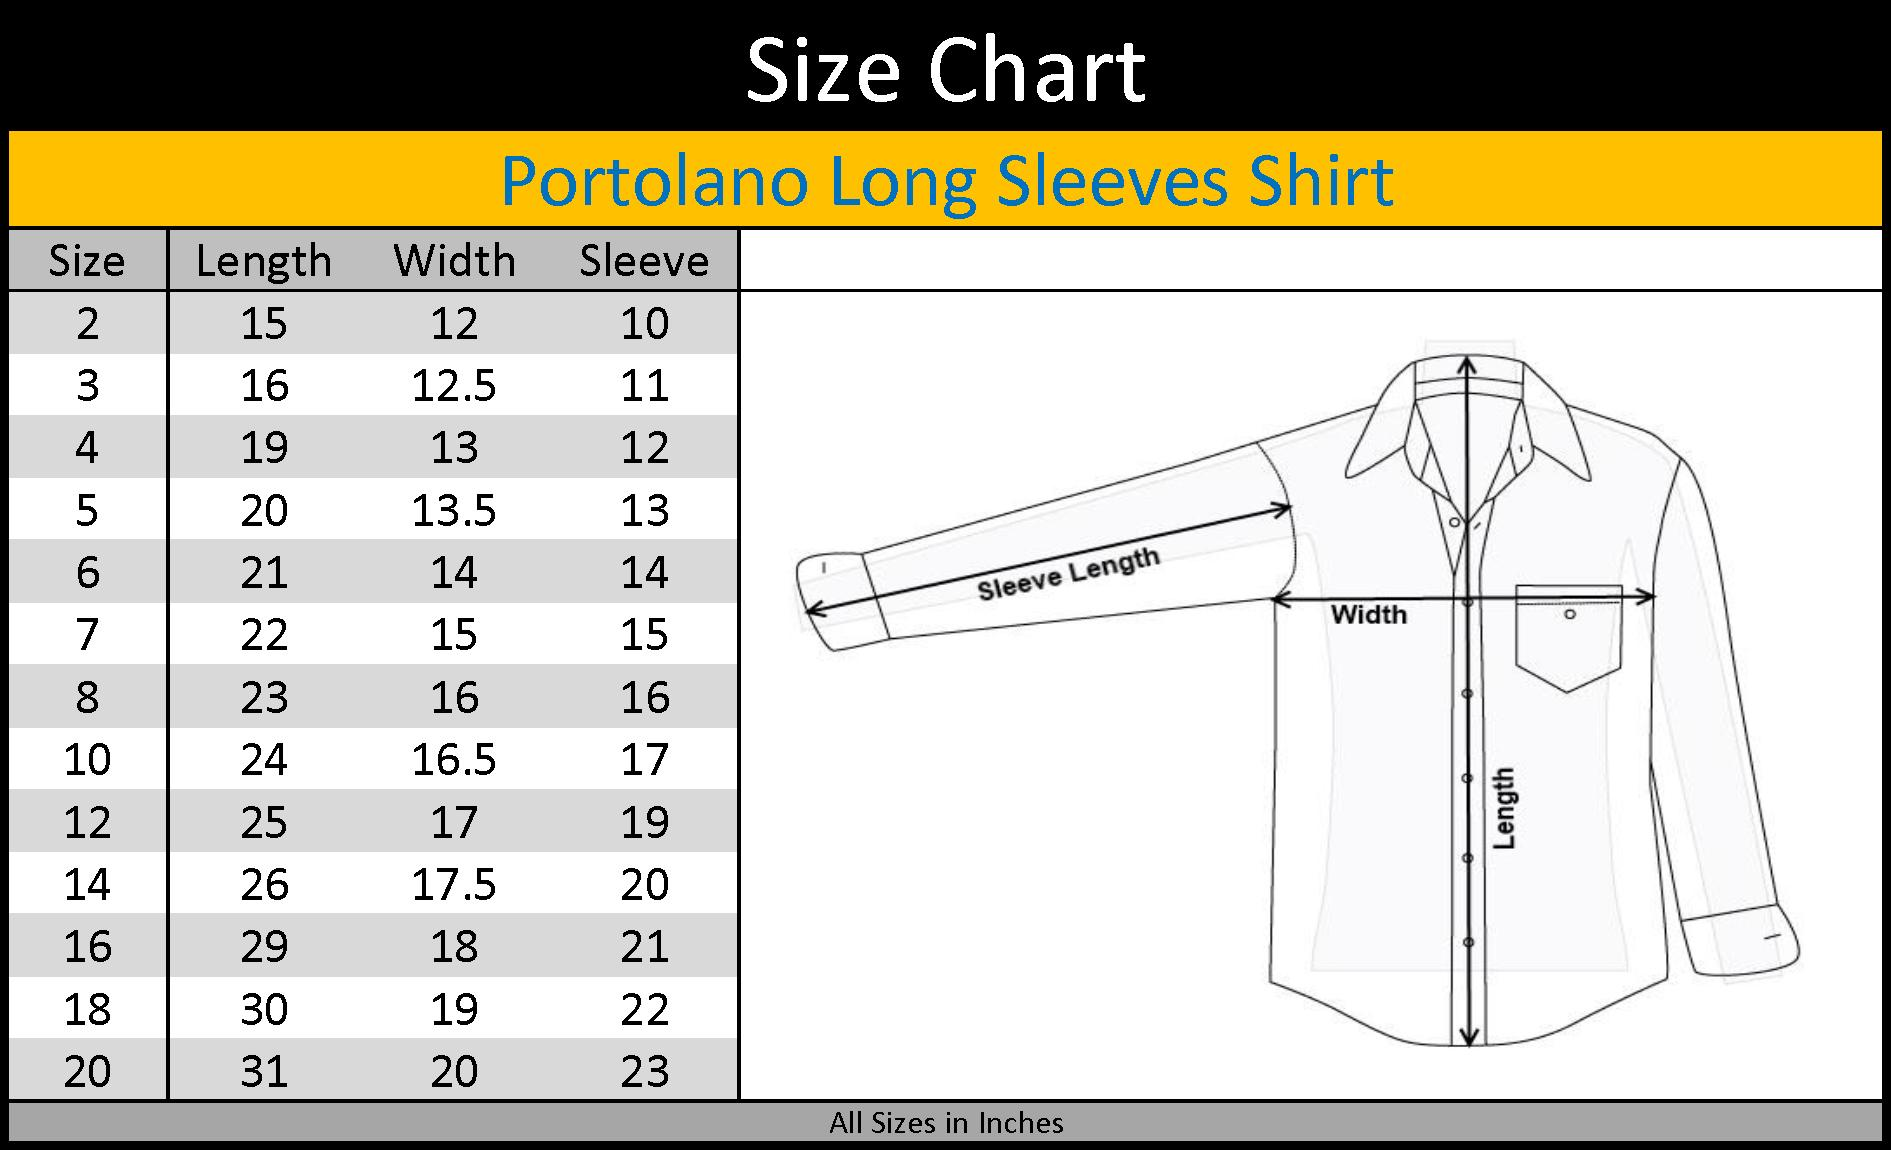 Men's European Shirt Size Chart This Shirt Size Guide can be used with smart shirts and dress fbcpmhoe.cf smart shirts and dress shirts should fit perfectly. But are you sure you actually use the correct shirt size?